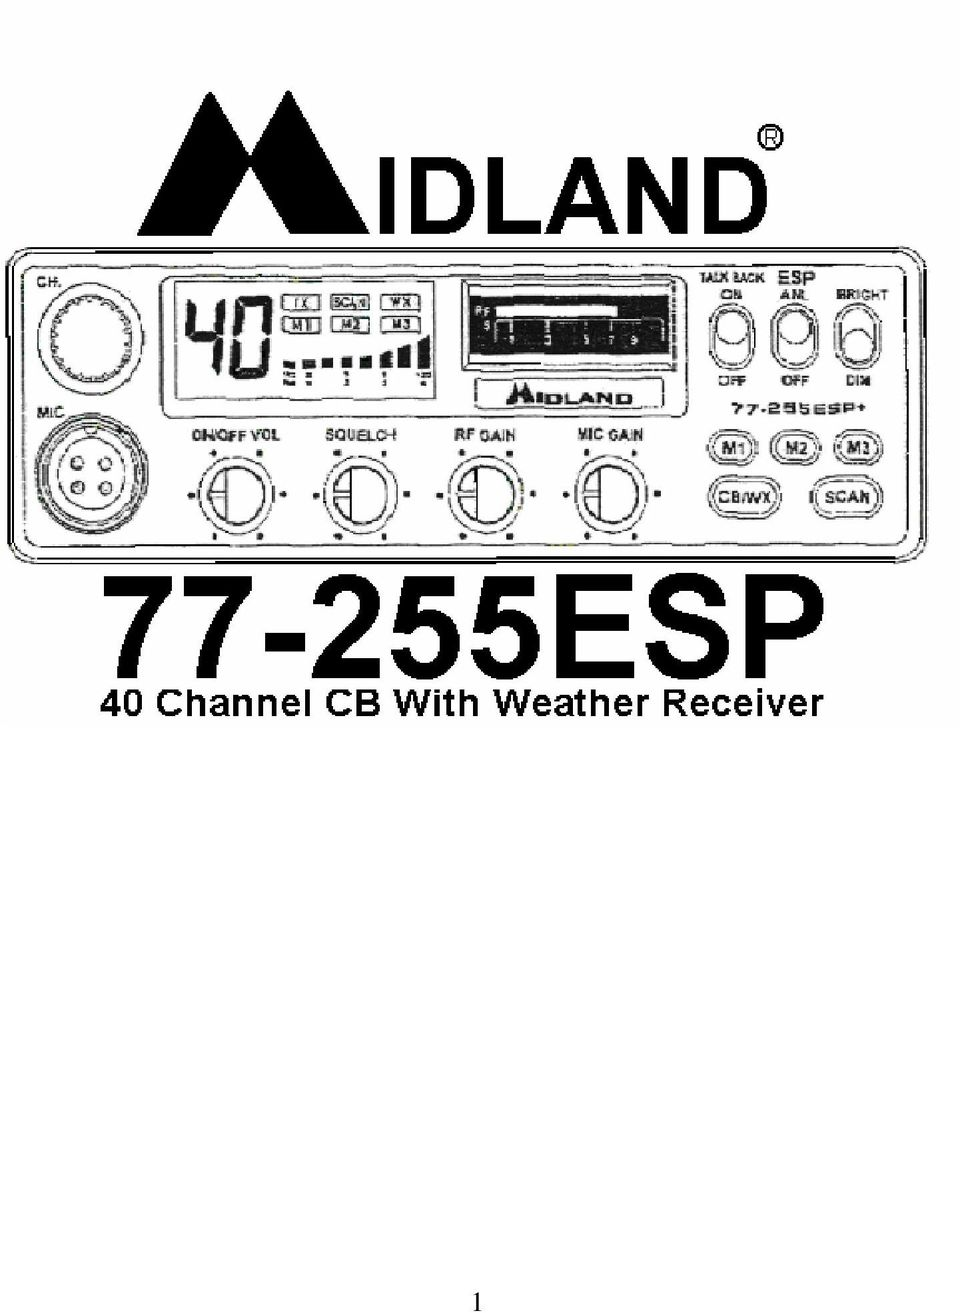 Installation And Operating Accessories Furnished With Your Midland Wiring Harness 2 40 Channel Cb Represents The State Of Art In High Tech Engineering This Unit Is Not Only A Full Feature Transceiver But Incorporates